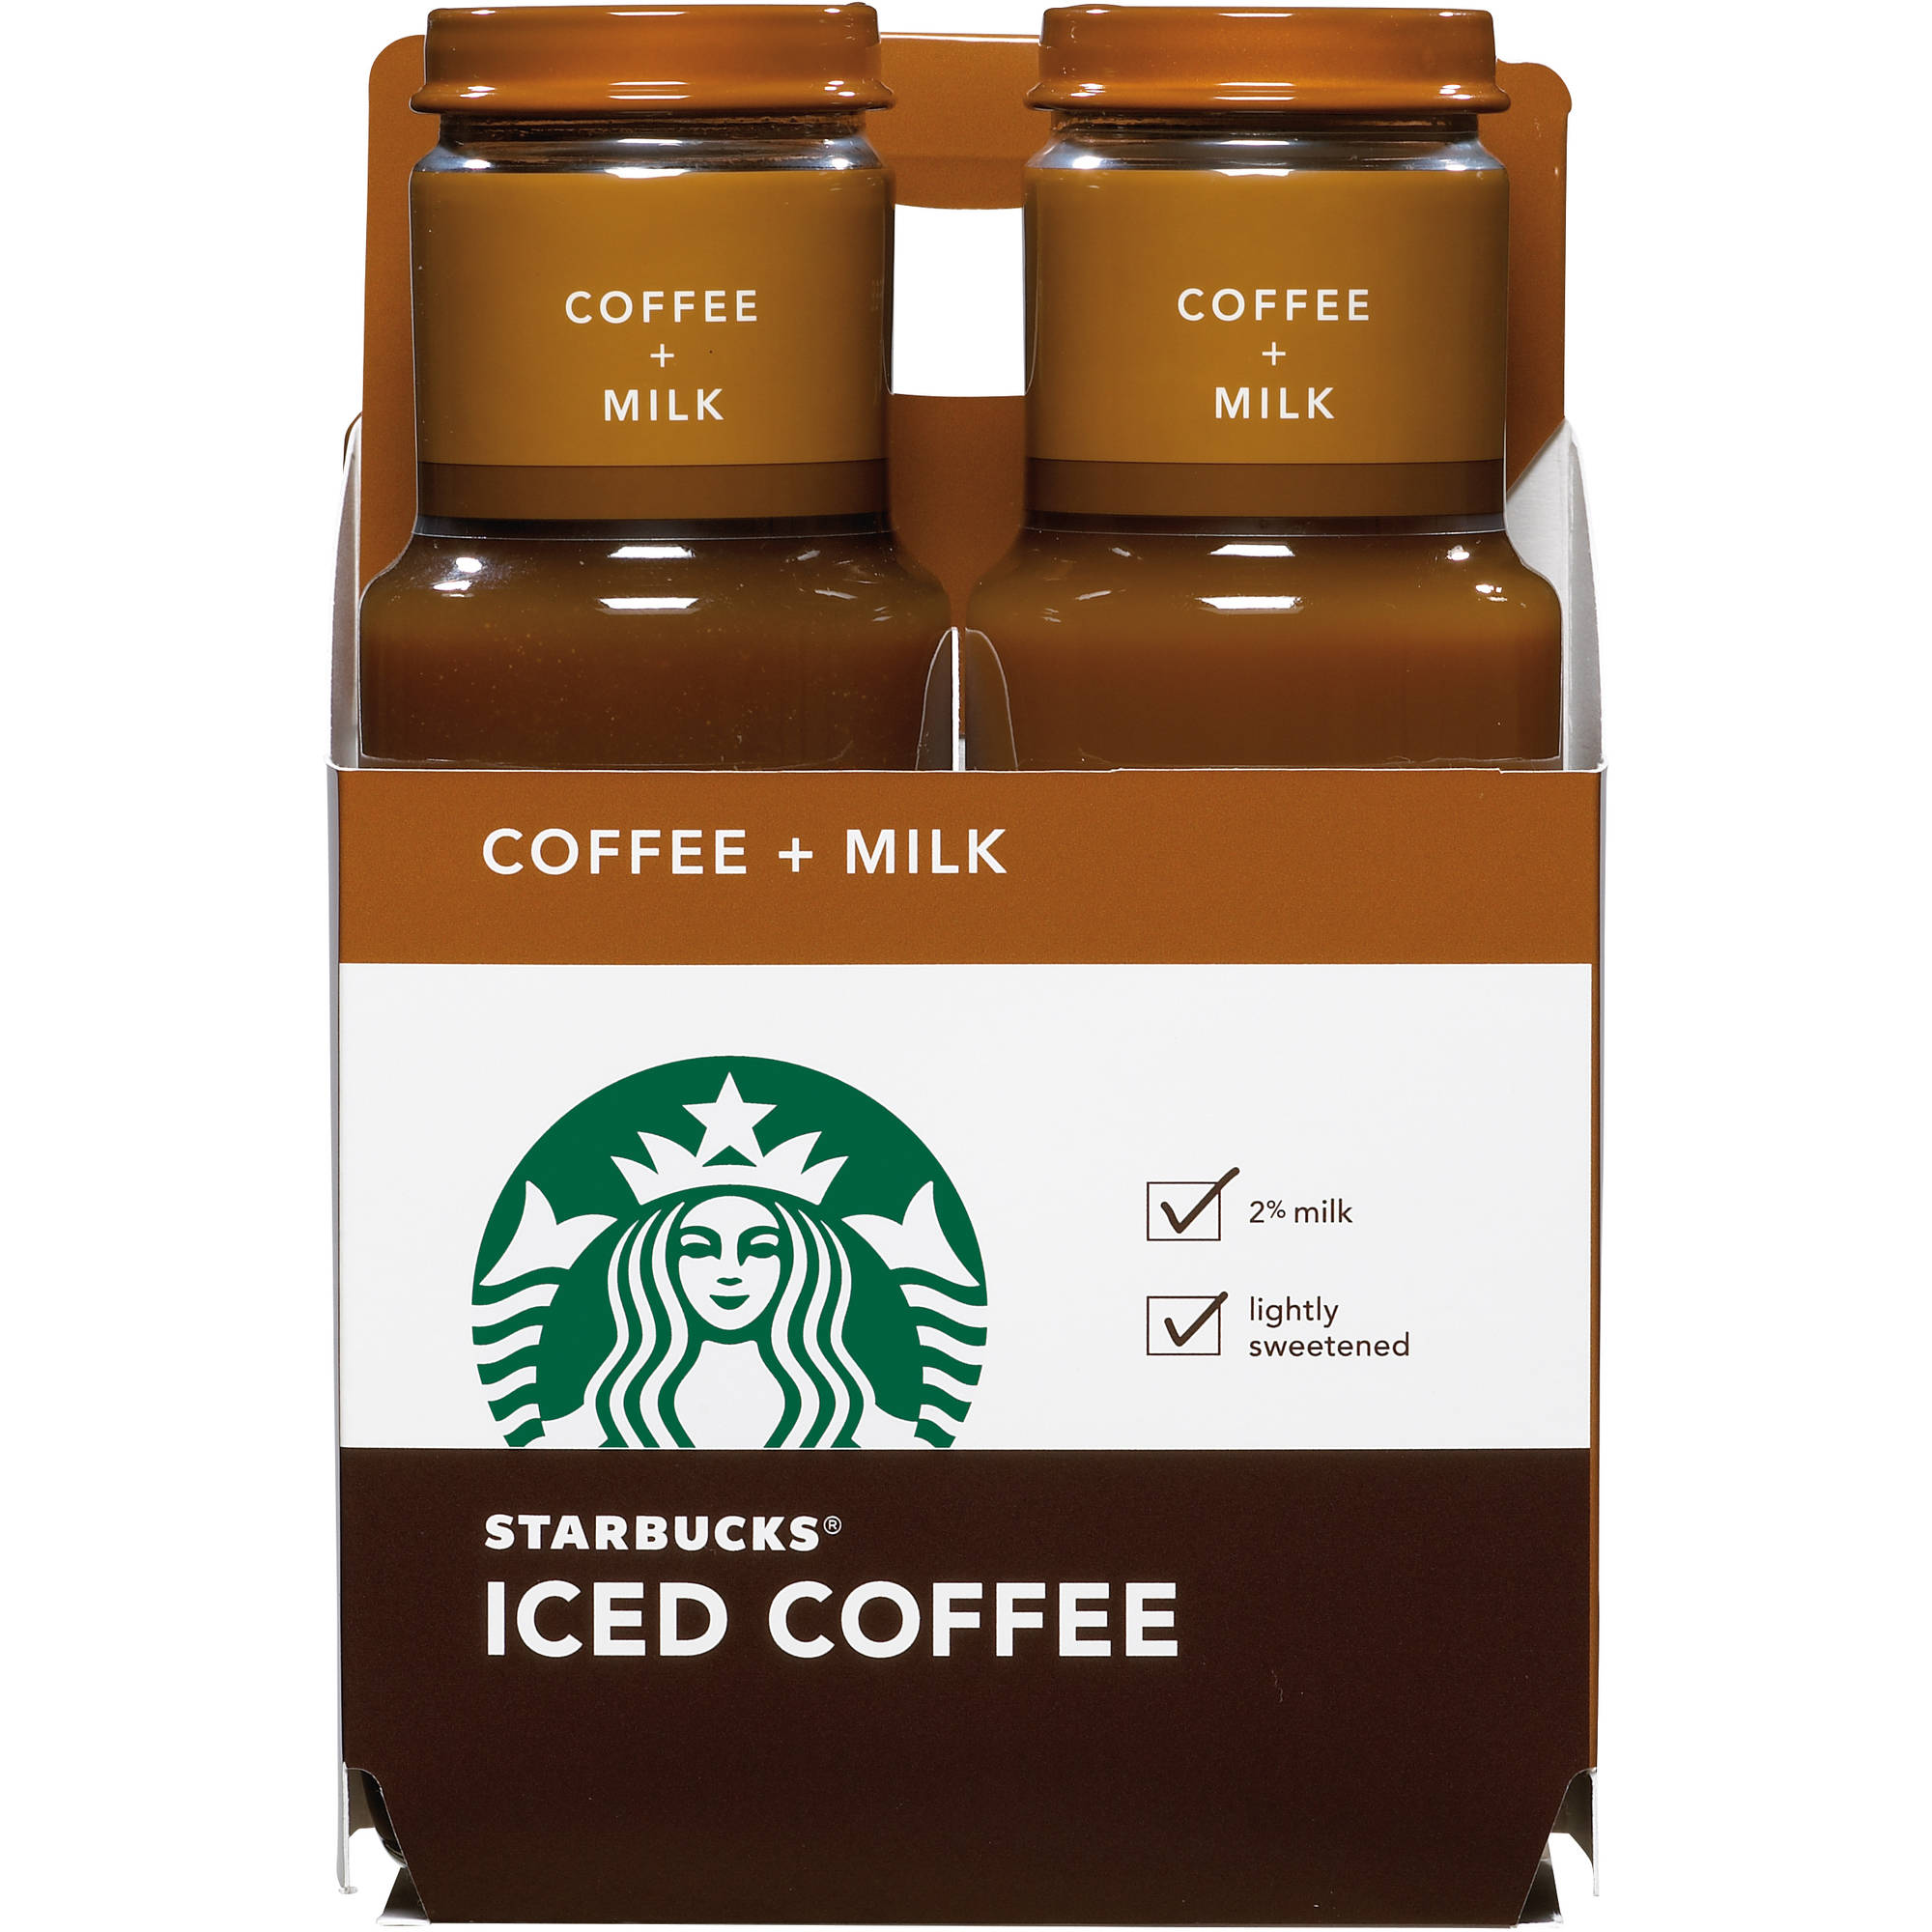 Starbucks Coffee + Milk Iced Coffee, 11 fl oz, 4 ct